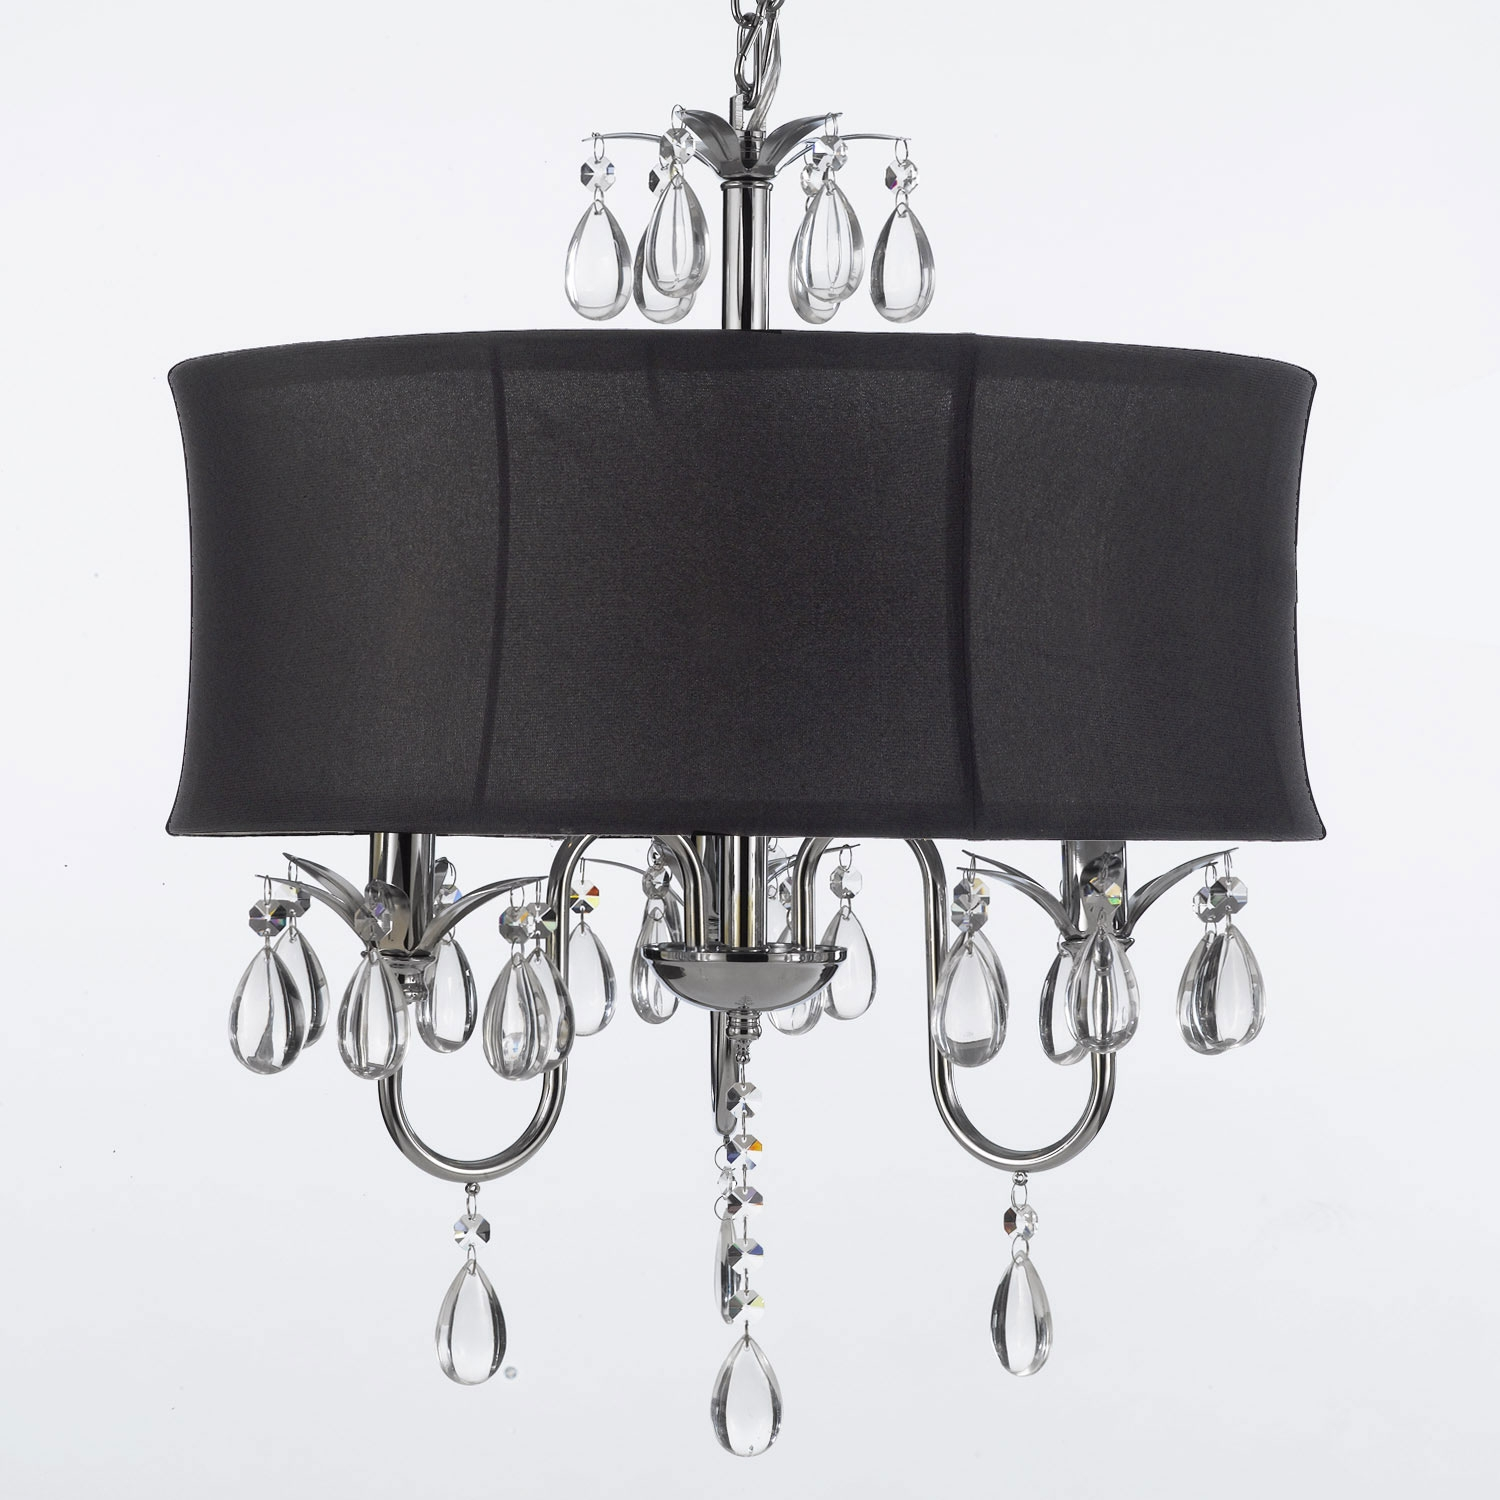 G7 Black8343 Chandeliers With Shades Crystal Chandelier With With Modern Black Chandelier (Image 9 of 15)